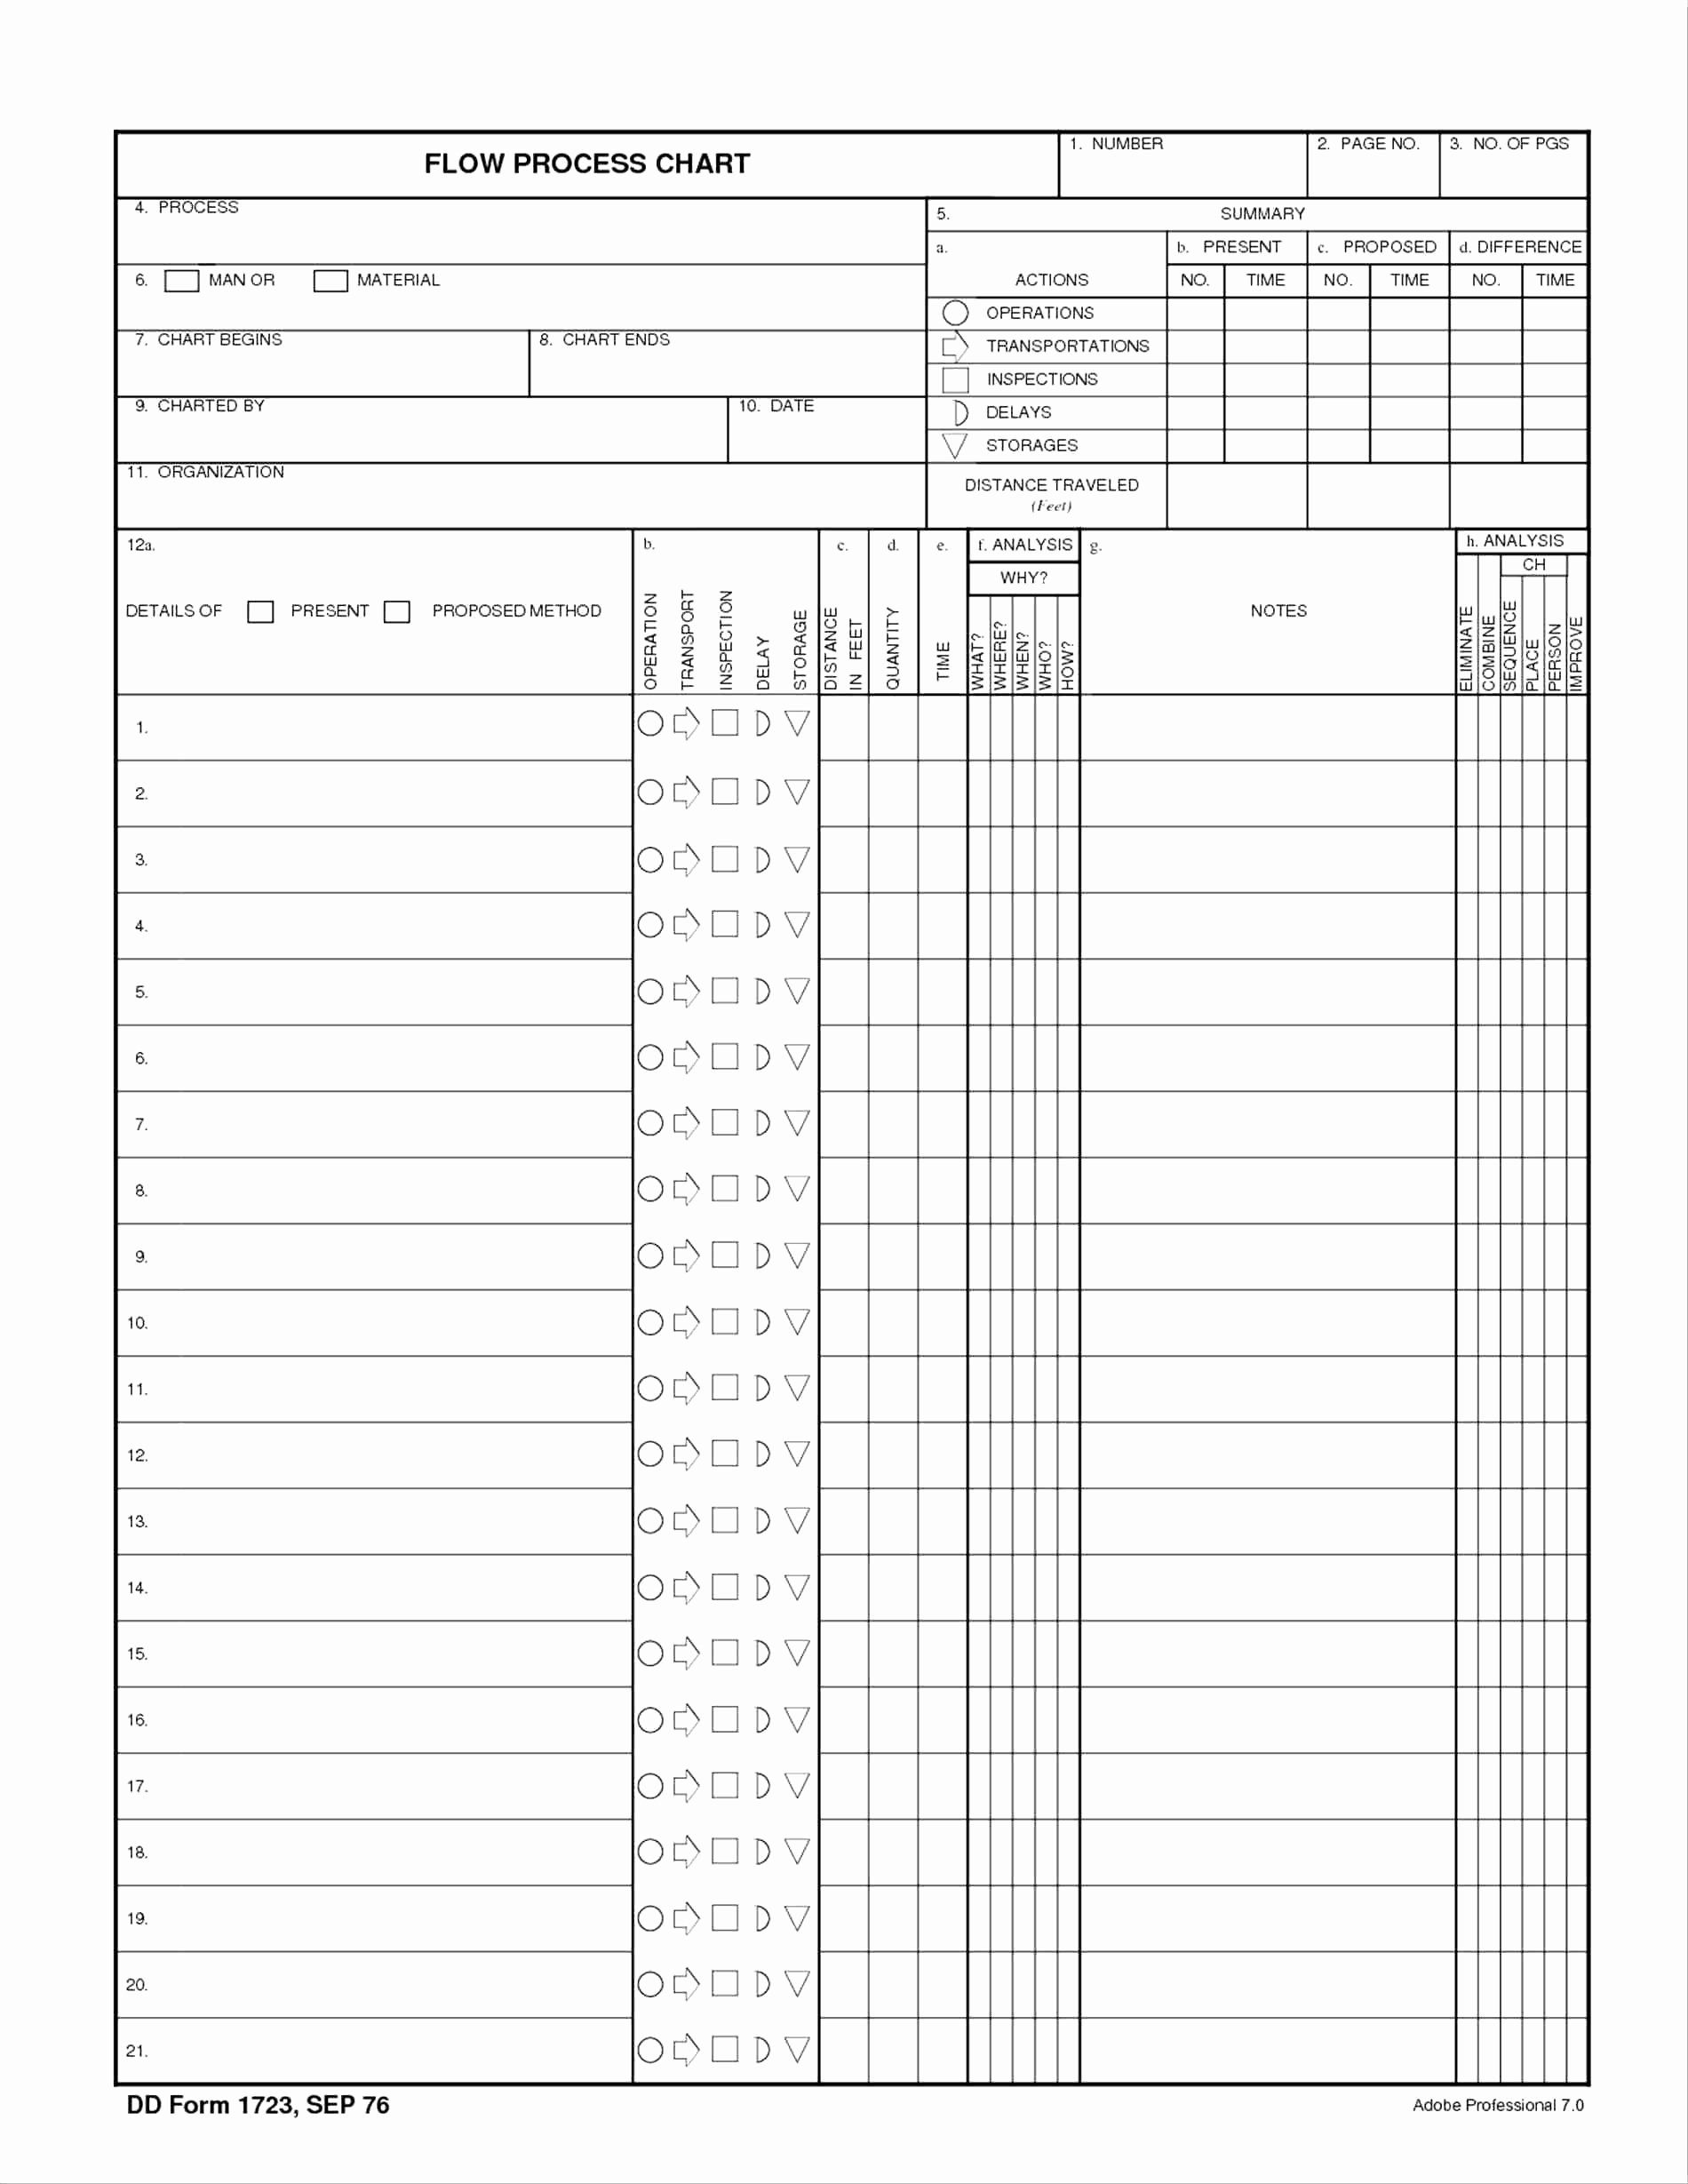 Probate Accounting Template Excel Inspirational Chart Of Accounts Template Excel – Probate Accounting